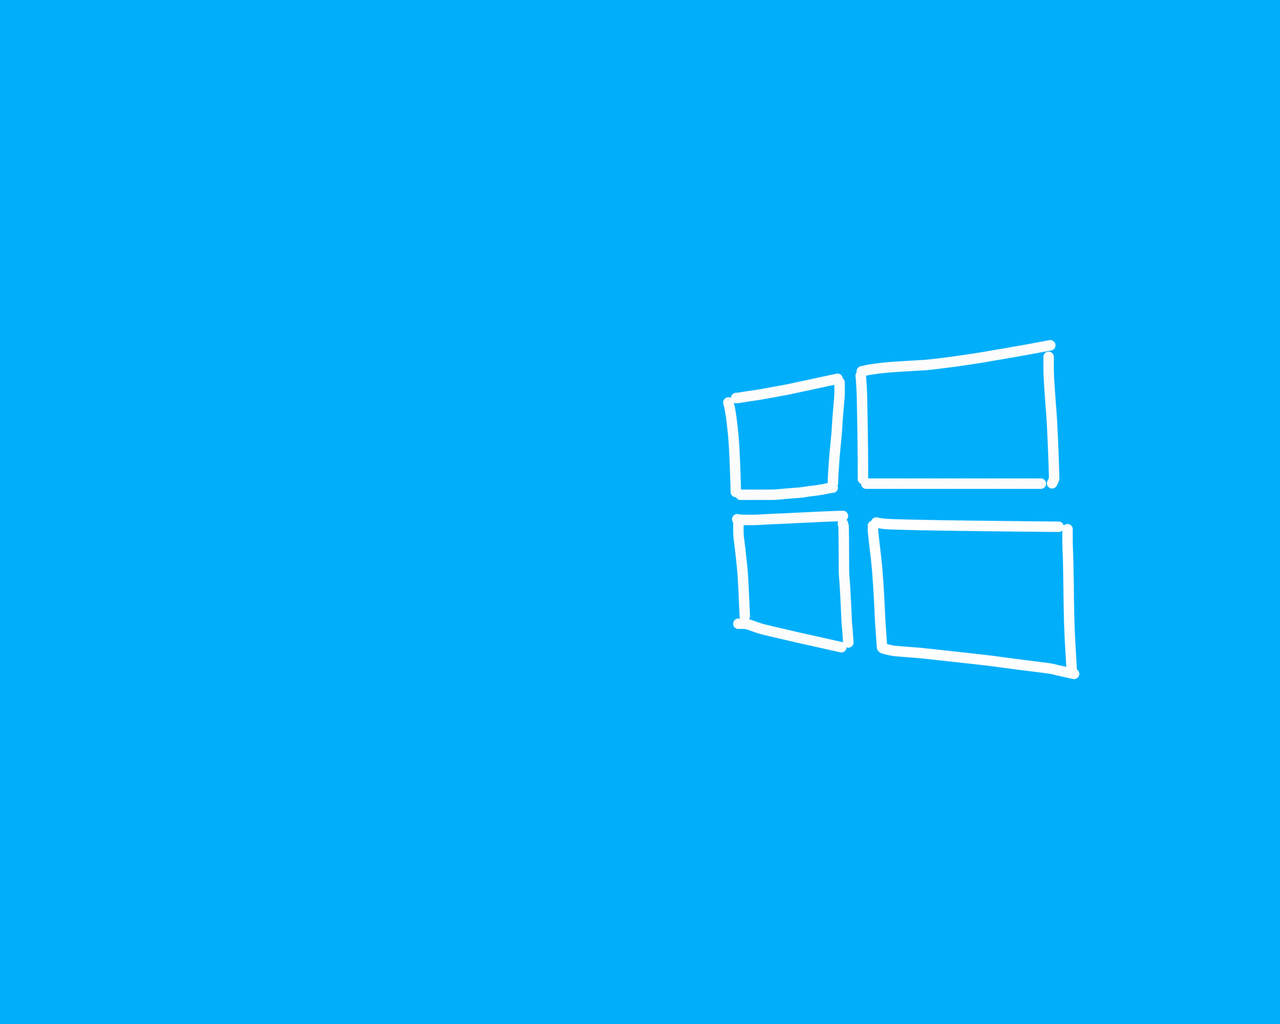 windows-10-metro-minimal-4k-fr.jpg